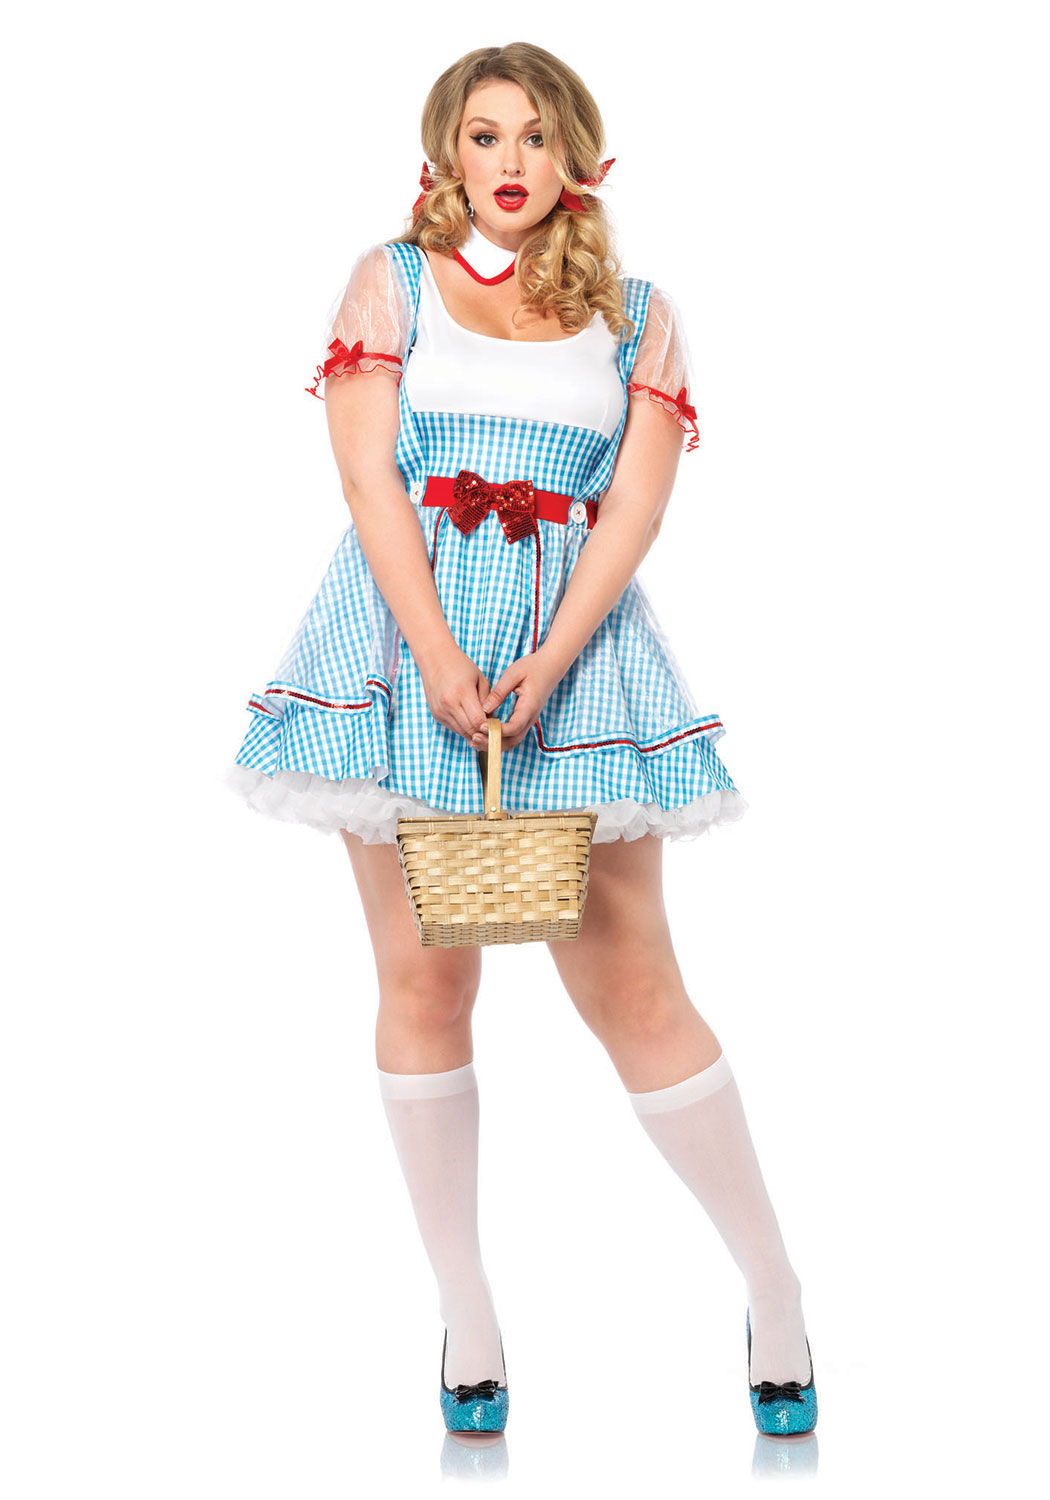 ... 2014 Womenu0027s Halloween Costumes From Love Culture 17 ...